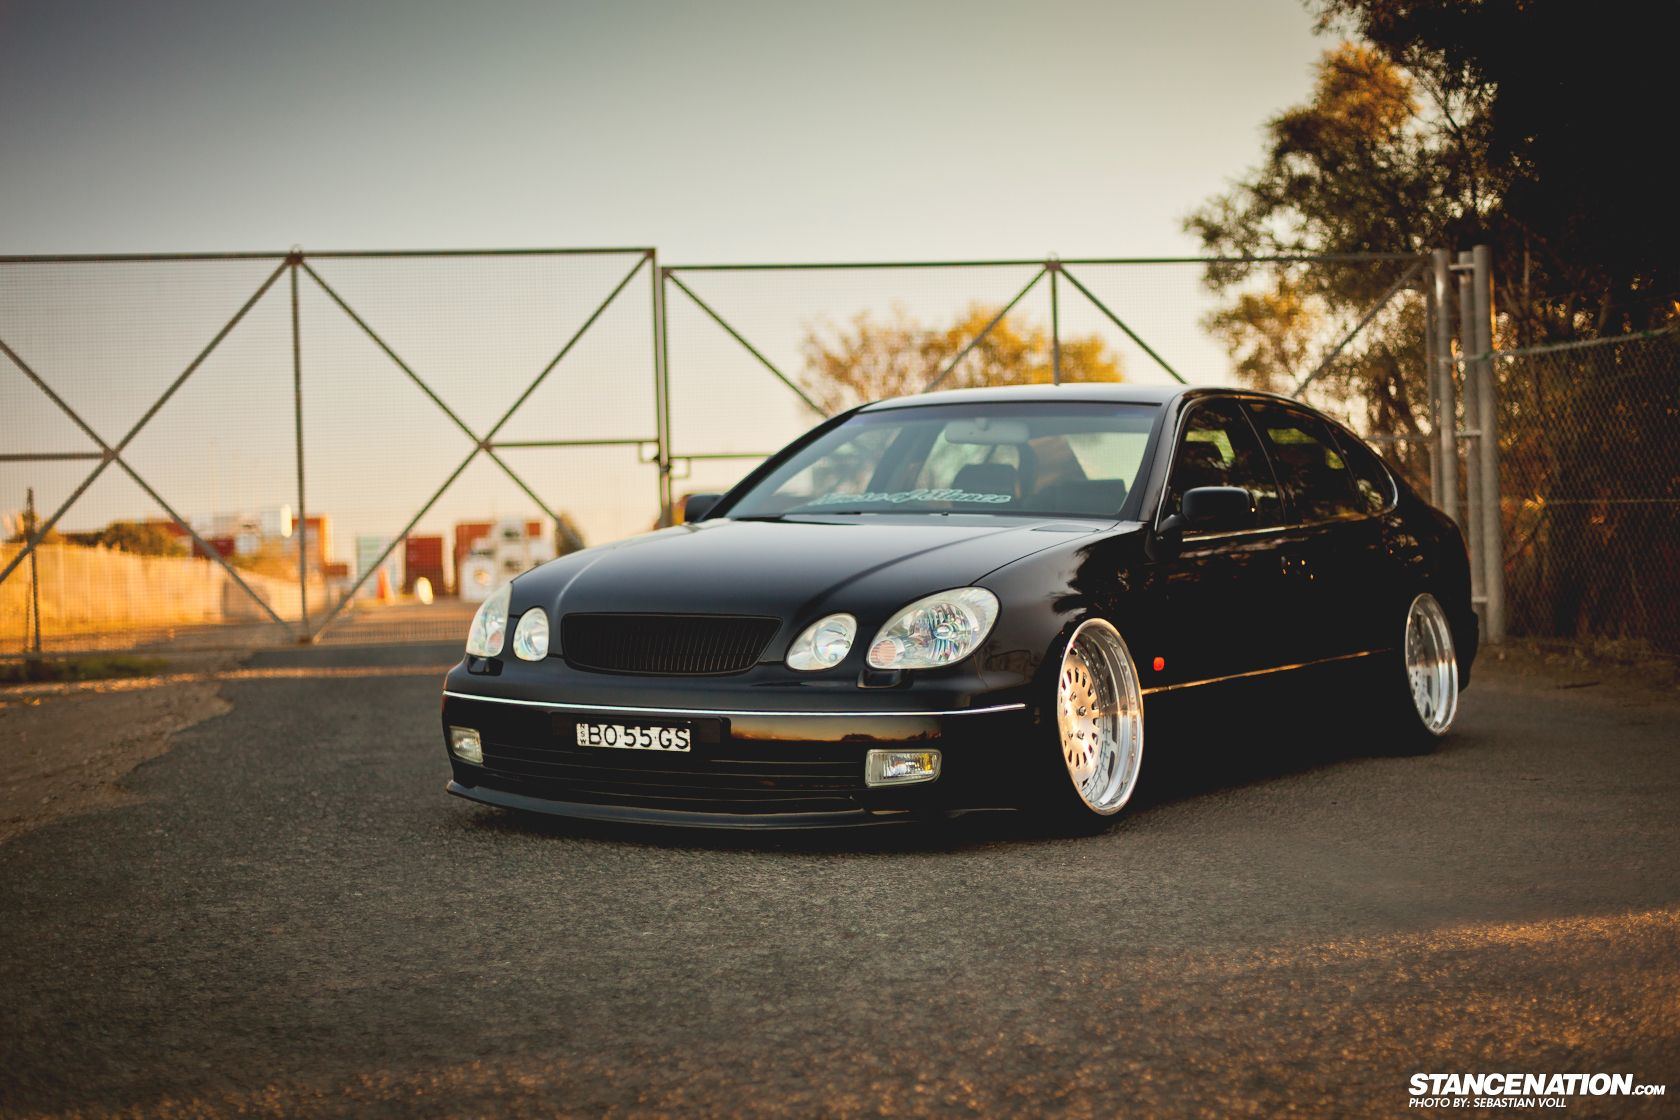 hight resolution of simplicity is beauty chook s lexus gs300 stancenation form function